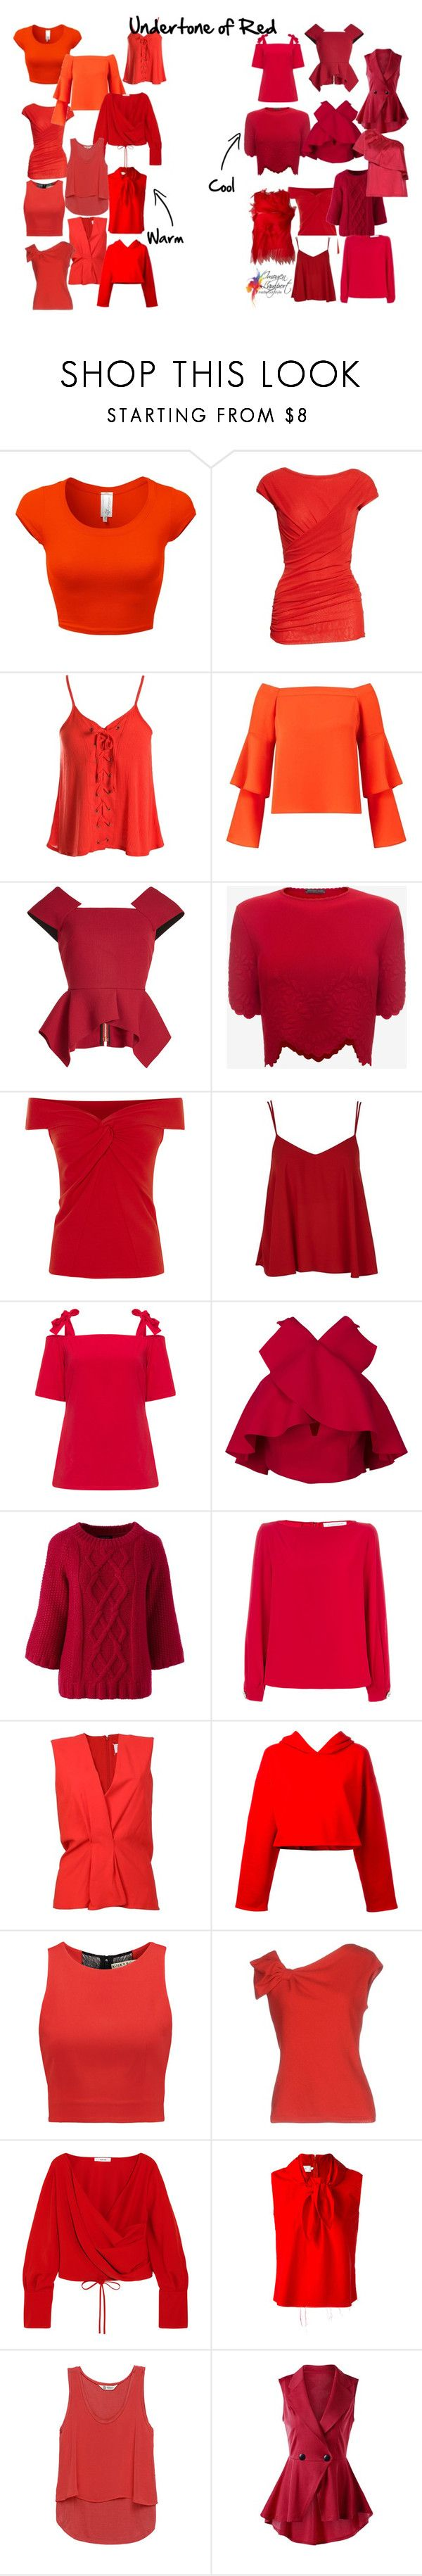 """""""Undertone of red"""" by imogenl ❤ liked on Polyvore featuring FUZZI, Sans Souci, Miss Selfridge, Roland Mouret, Alexander McQueen, Topshop, Manon Baptiste, Lands' End, Gianluca Capannolo and Maison Margiela"""